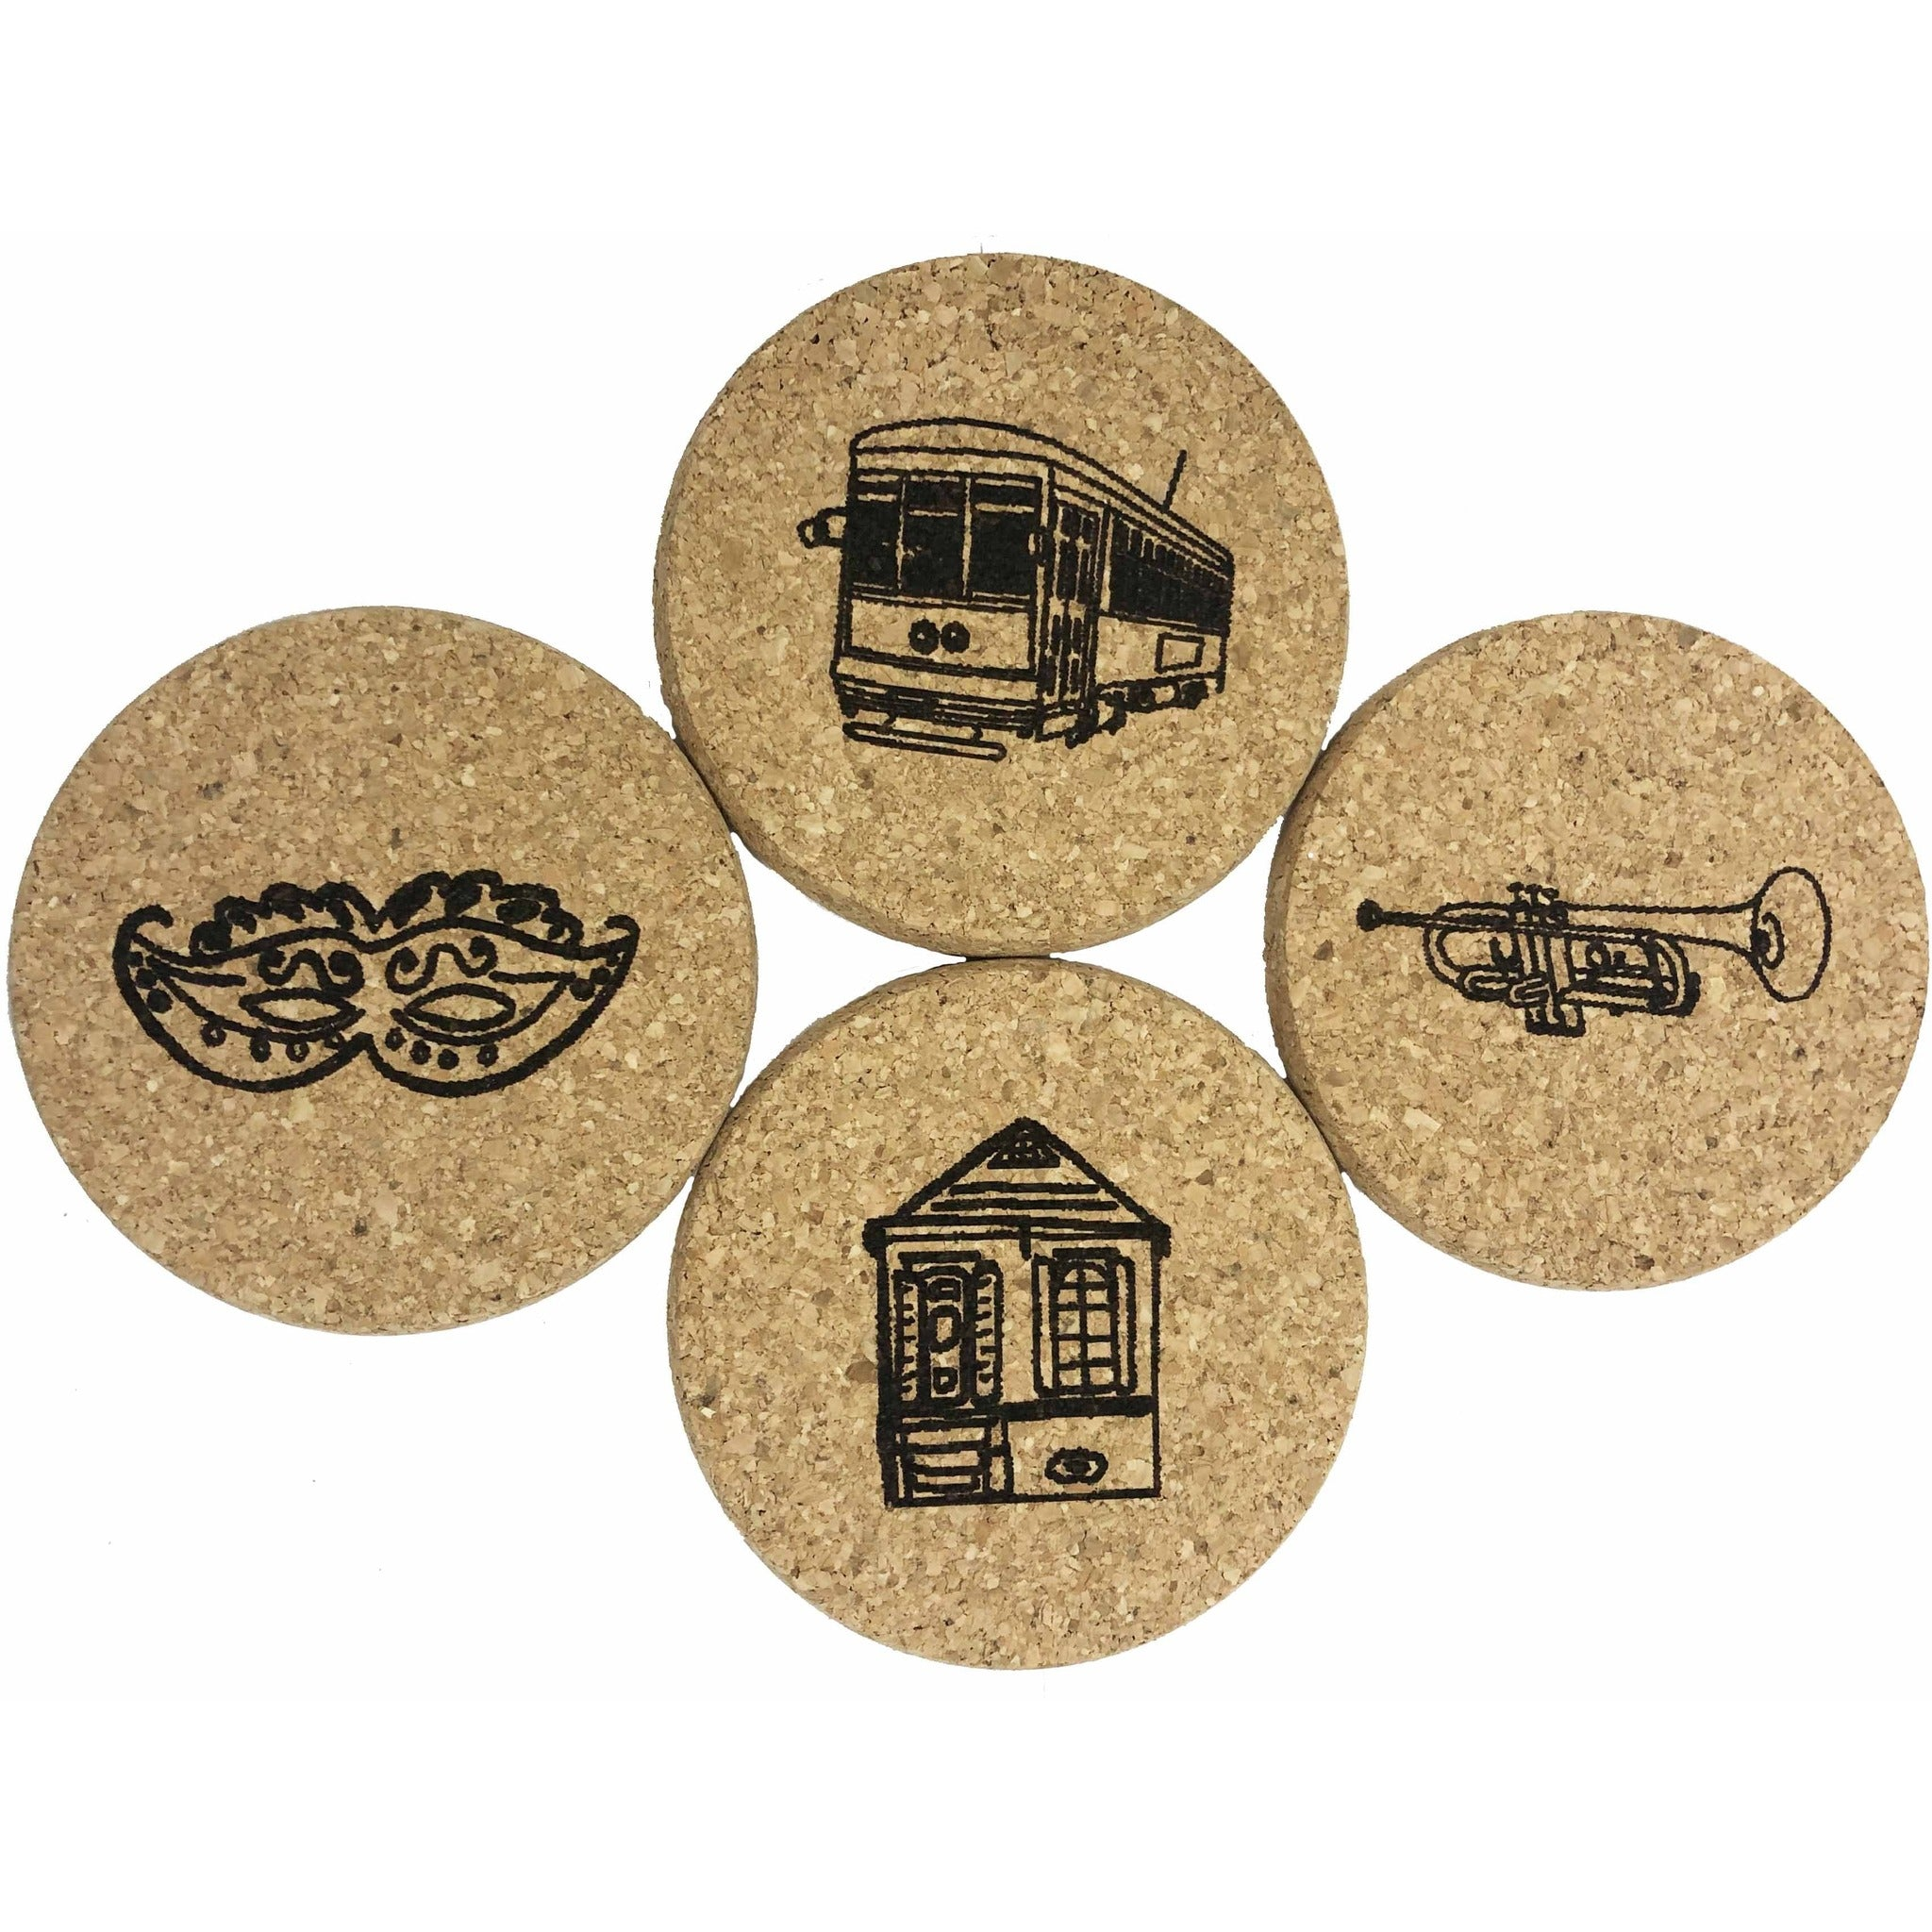 queork cork coasters new orleans